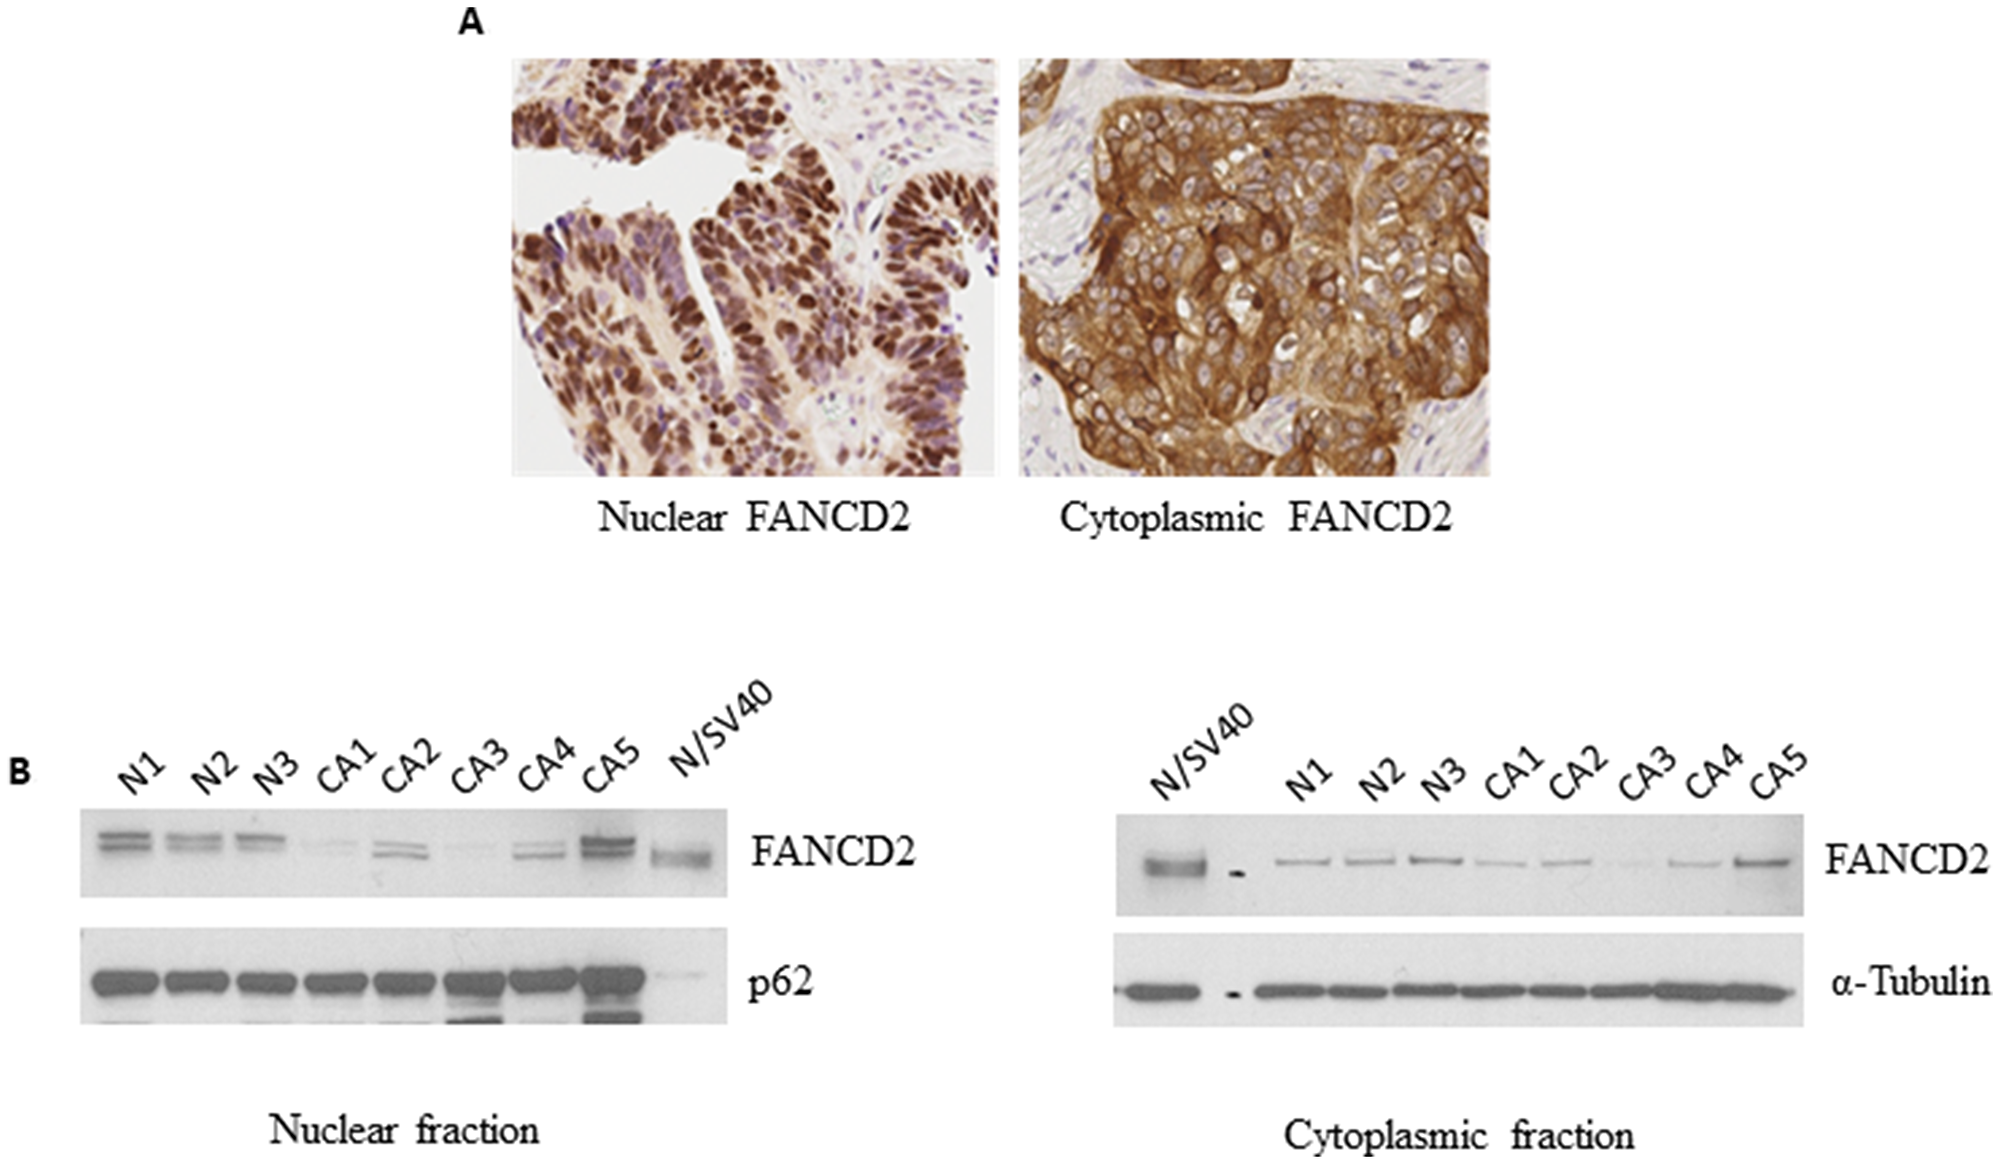 FANCD2 is present in the nucleus as well as the cytoplasm.